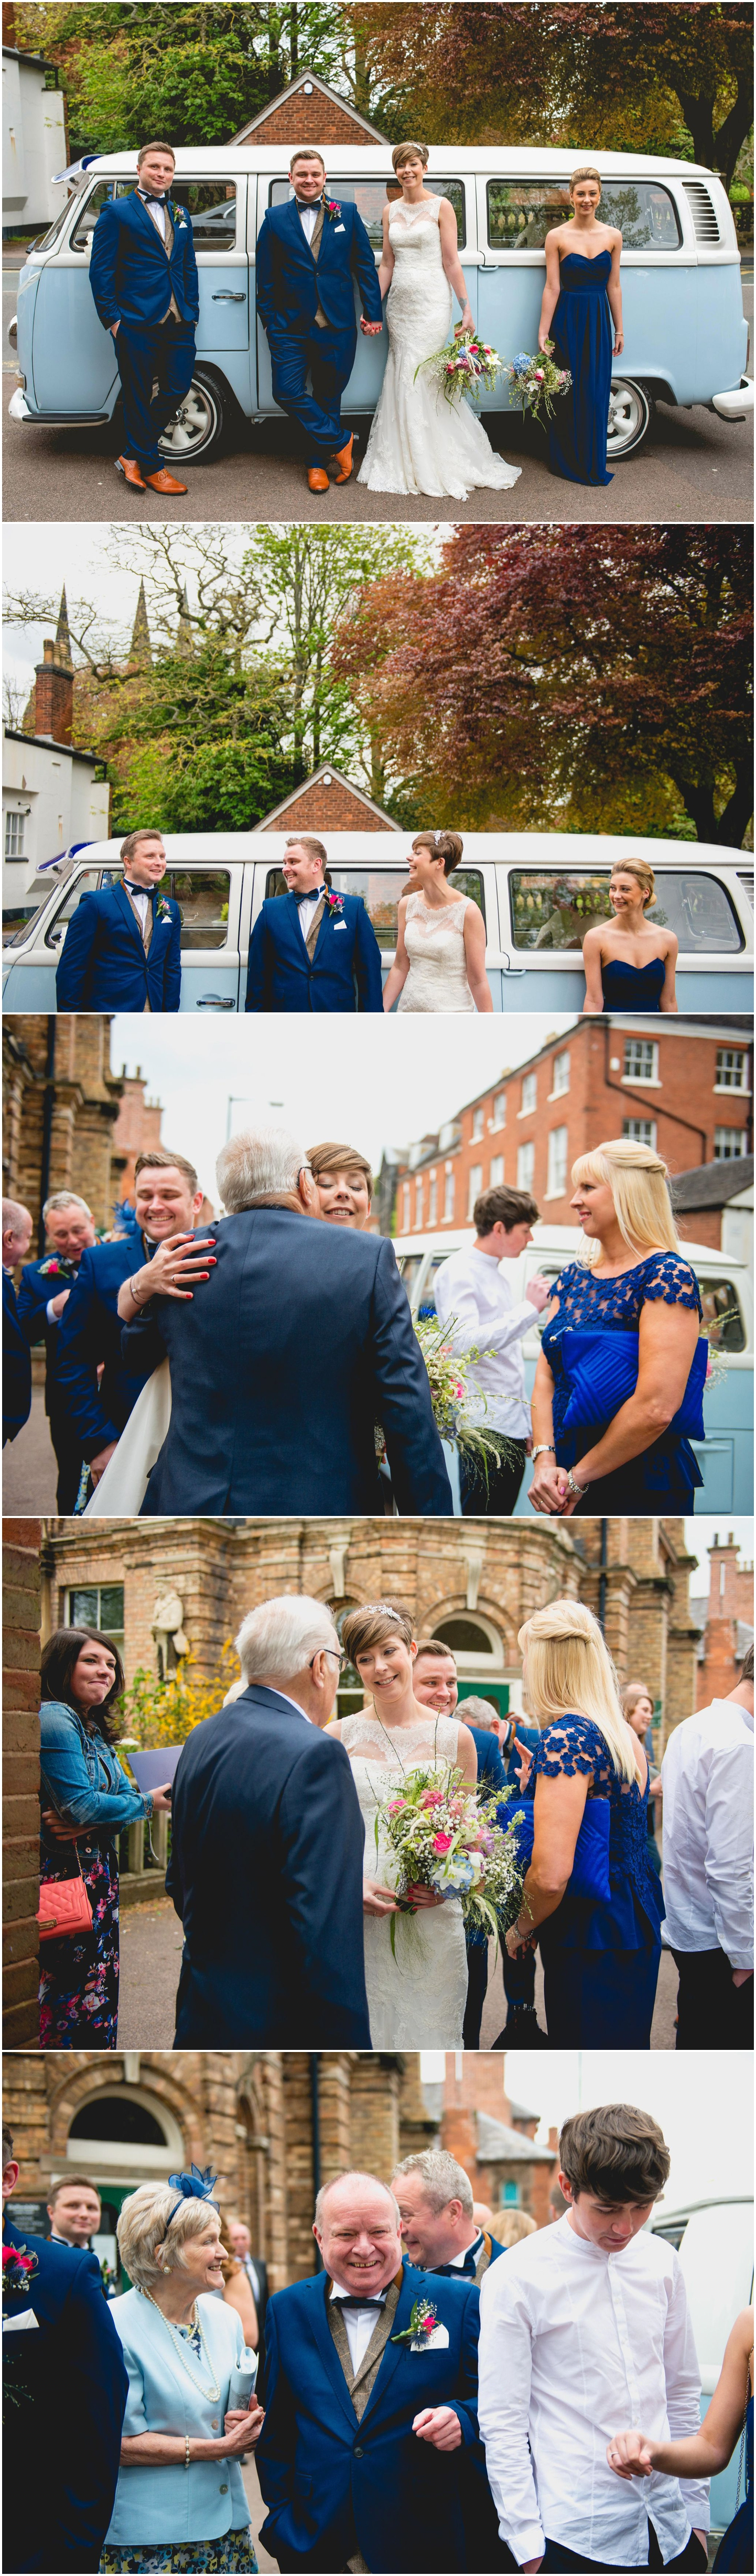 Rugeley Power Station, Wedding, Wedding Photography, West Midlands, photos,Lisa Carpenter Photography, Lichfield Registry Ofice, Peter and Eve, Subway, Power Station, Chimneys, Campervan, VW,